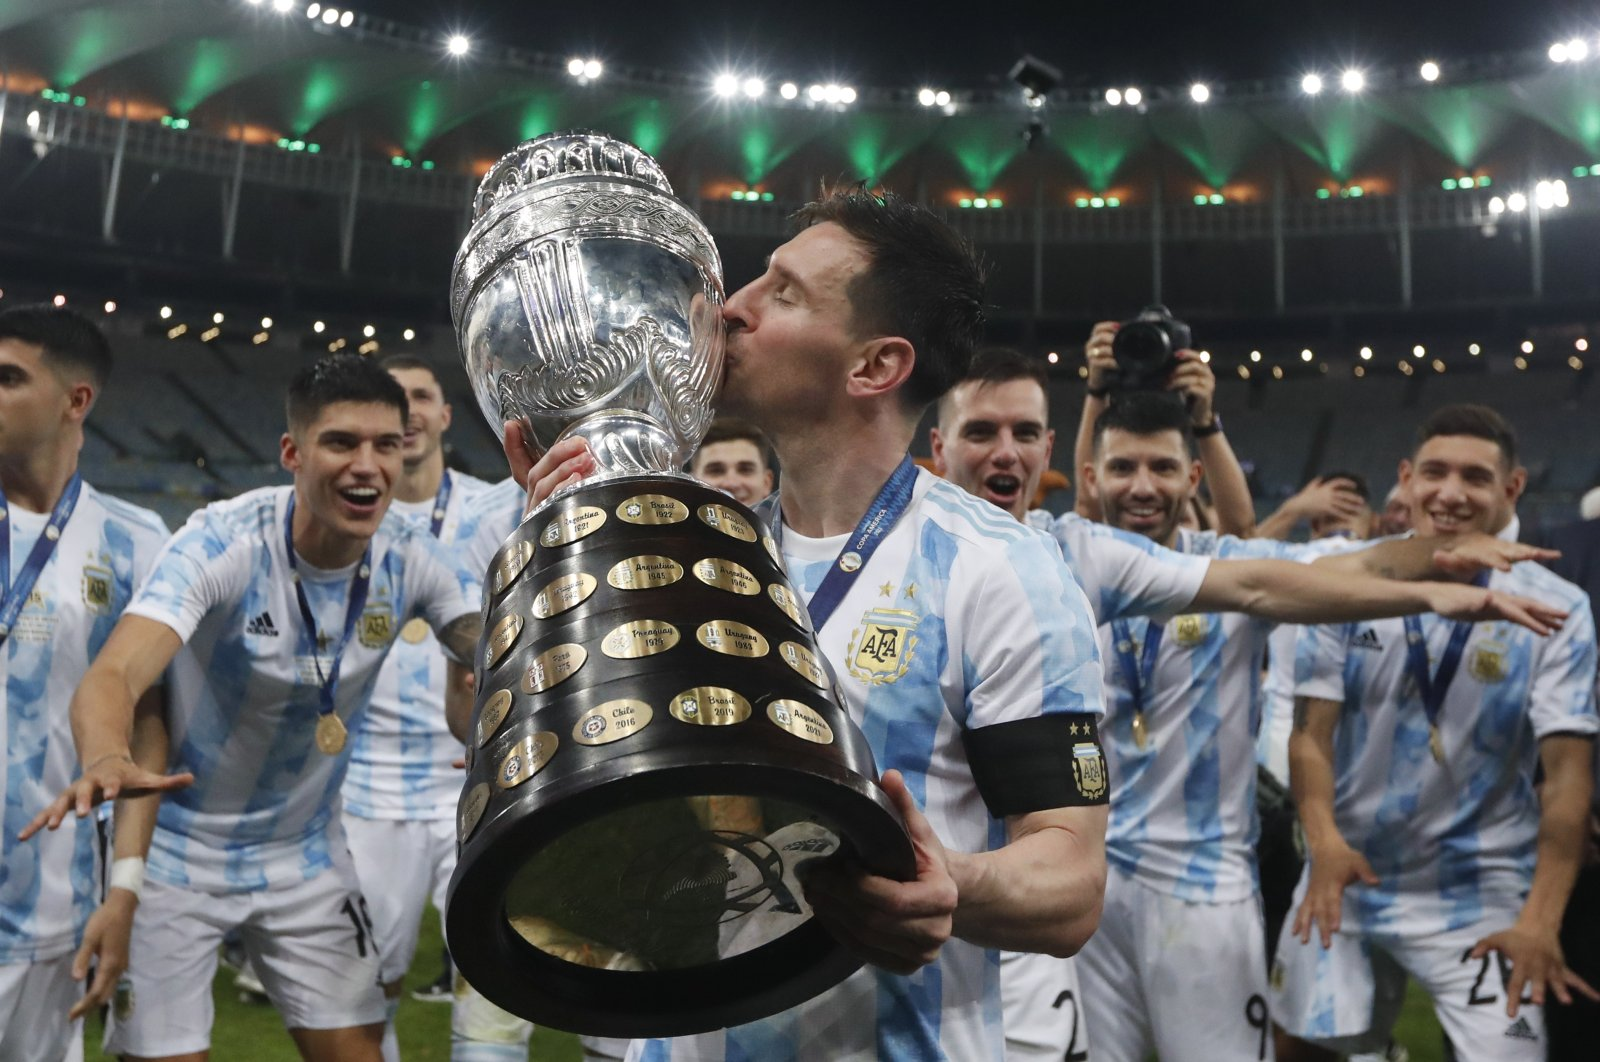 Argentina's Lionel Messi kisses the trophy after beating Brazil 1-0 in the Copa America final match at Maracana stadium in Rio de Janeiro, Brazil, July 10, 2021. (AP Photo)